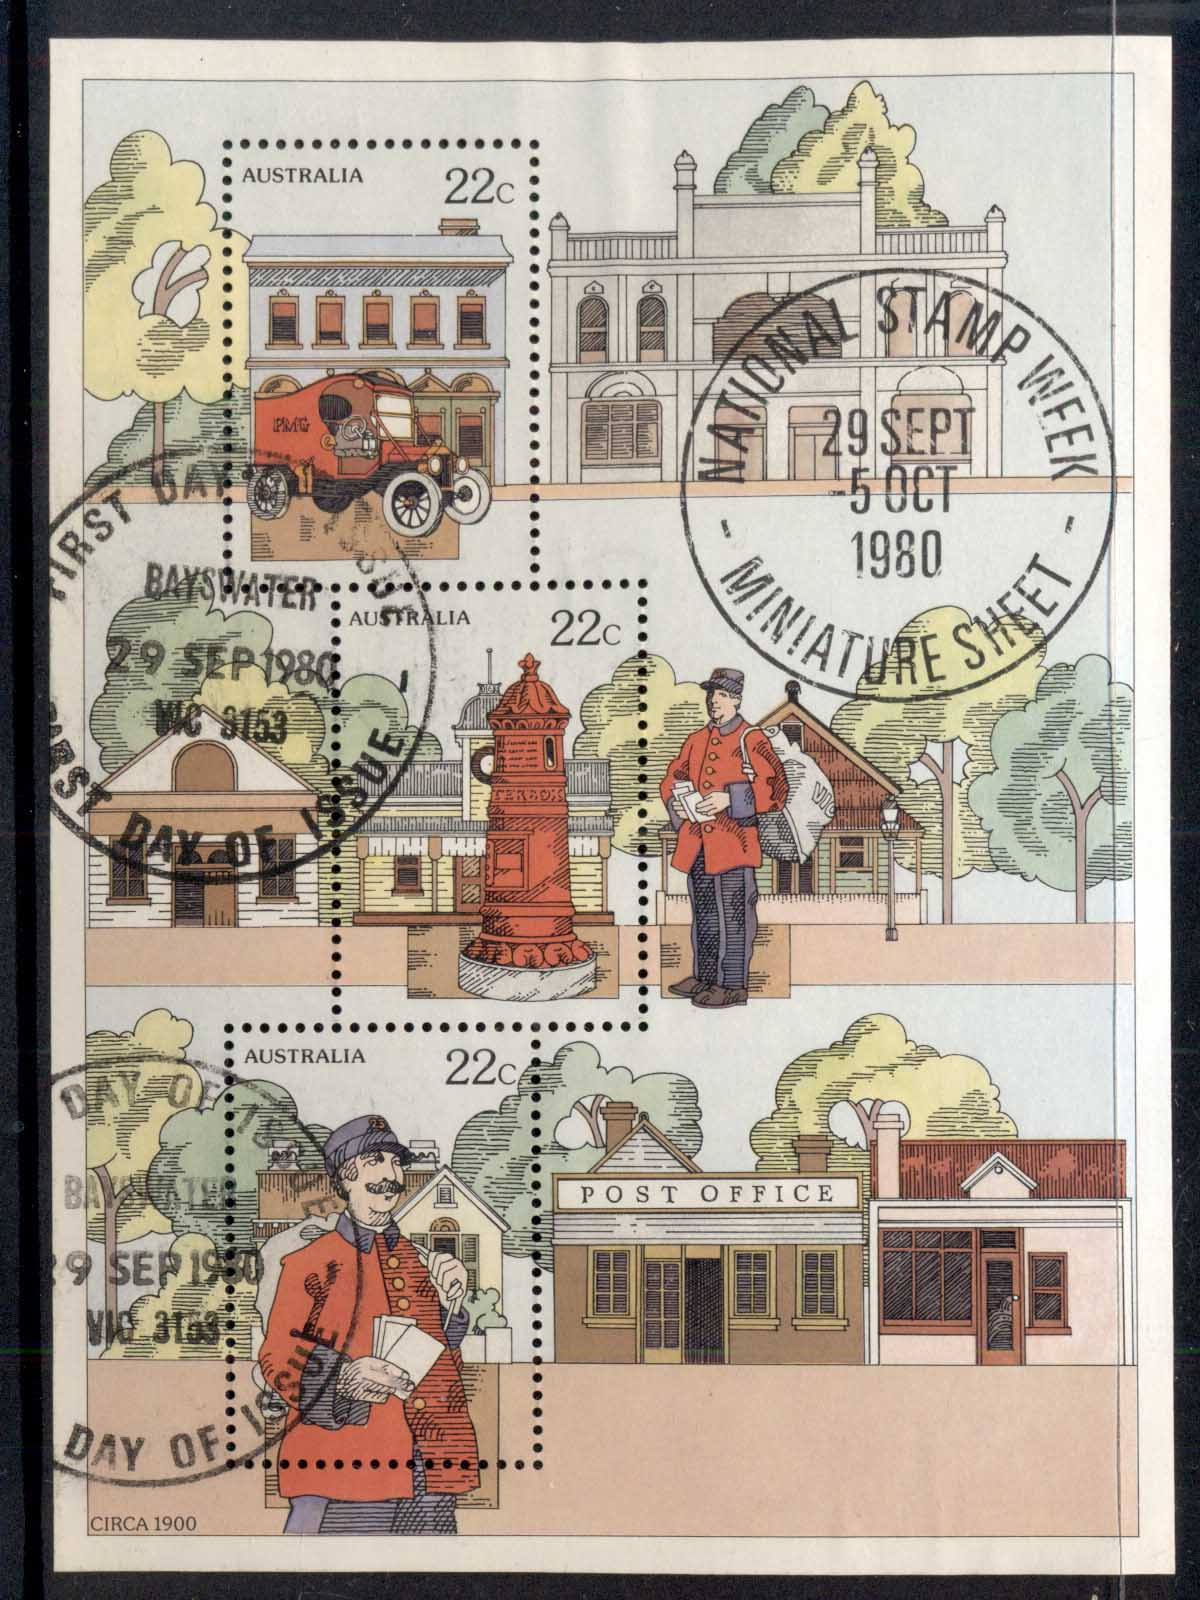 Australia 1980 Stamp Week MS Bayswater FDI